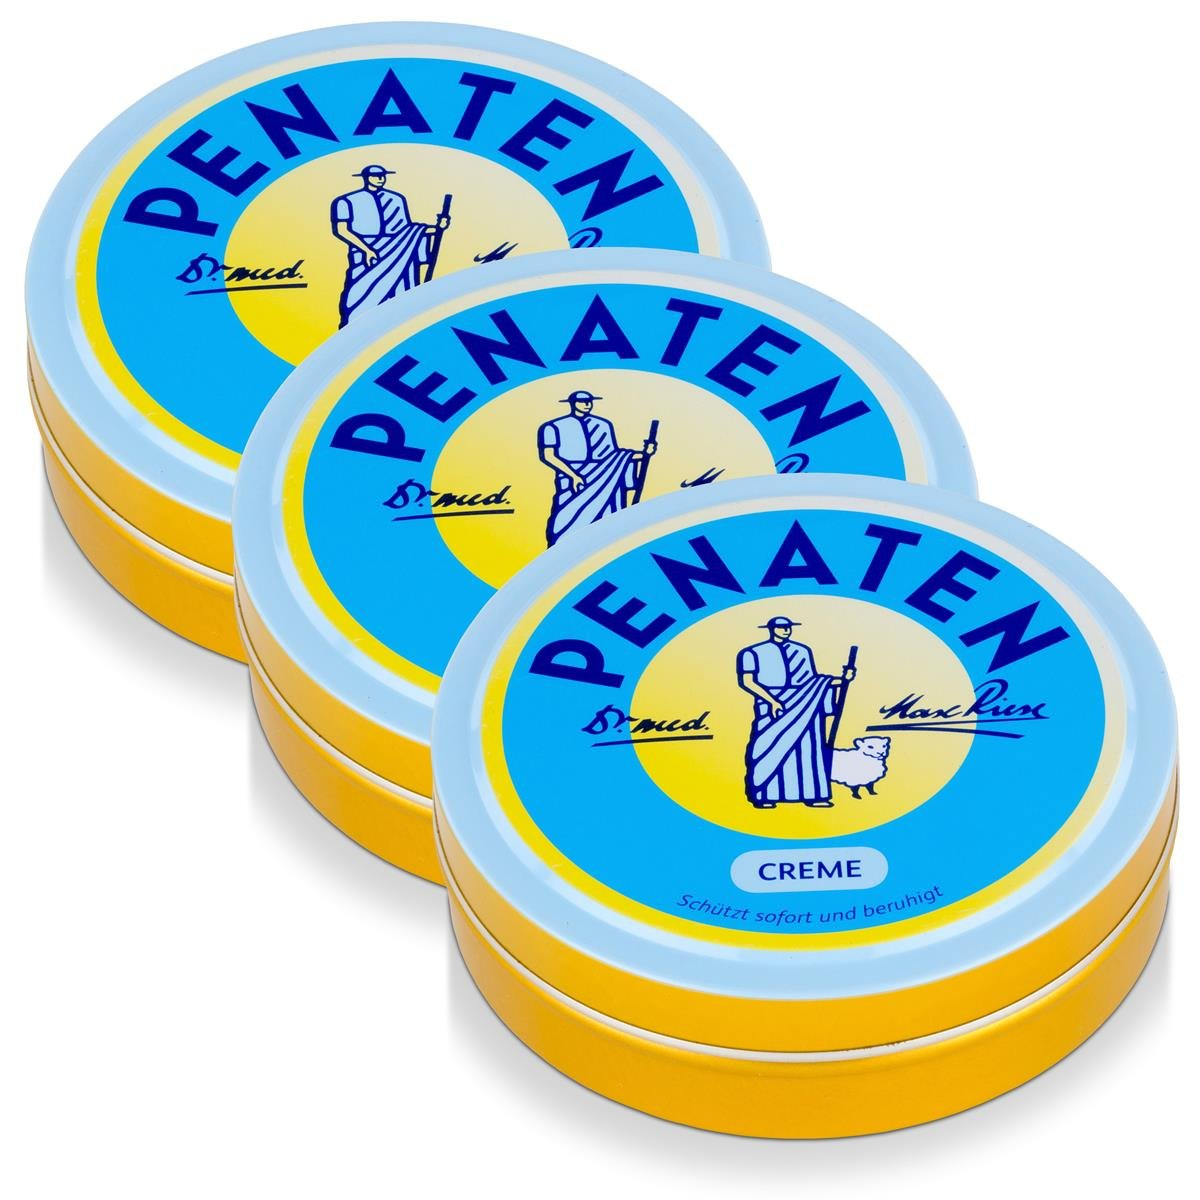 Baby Creme - 150ml (Pack of 3) by Penaten